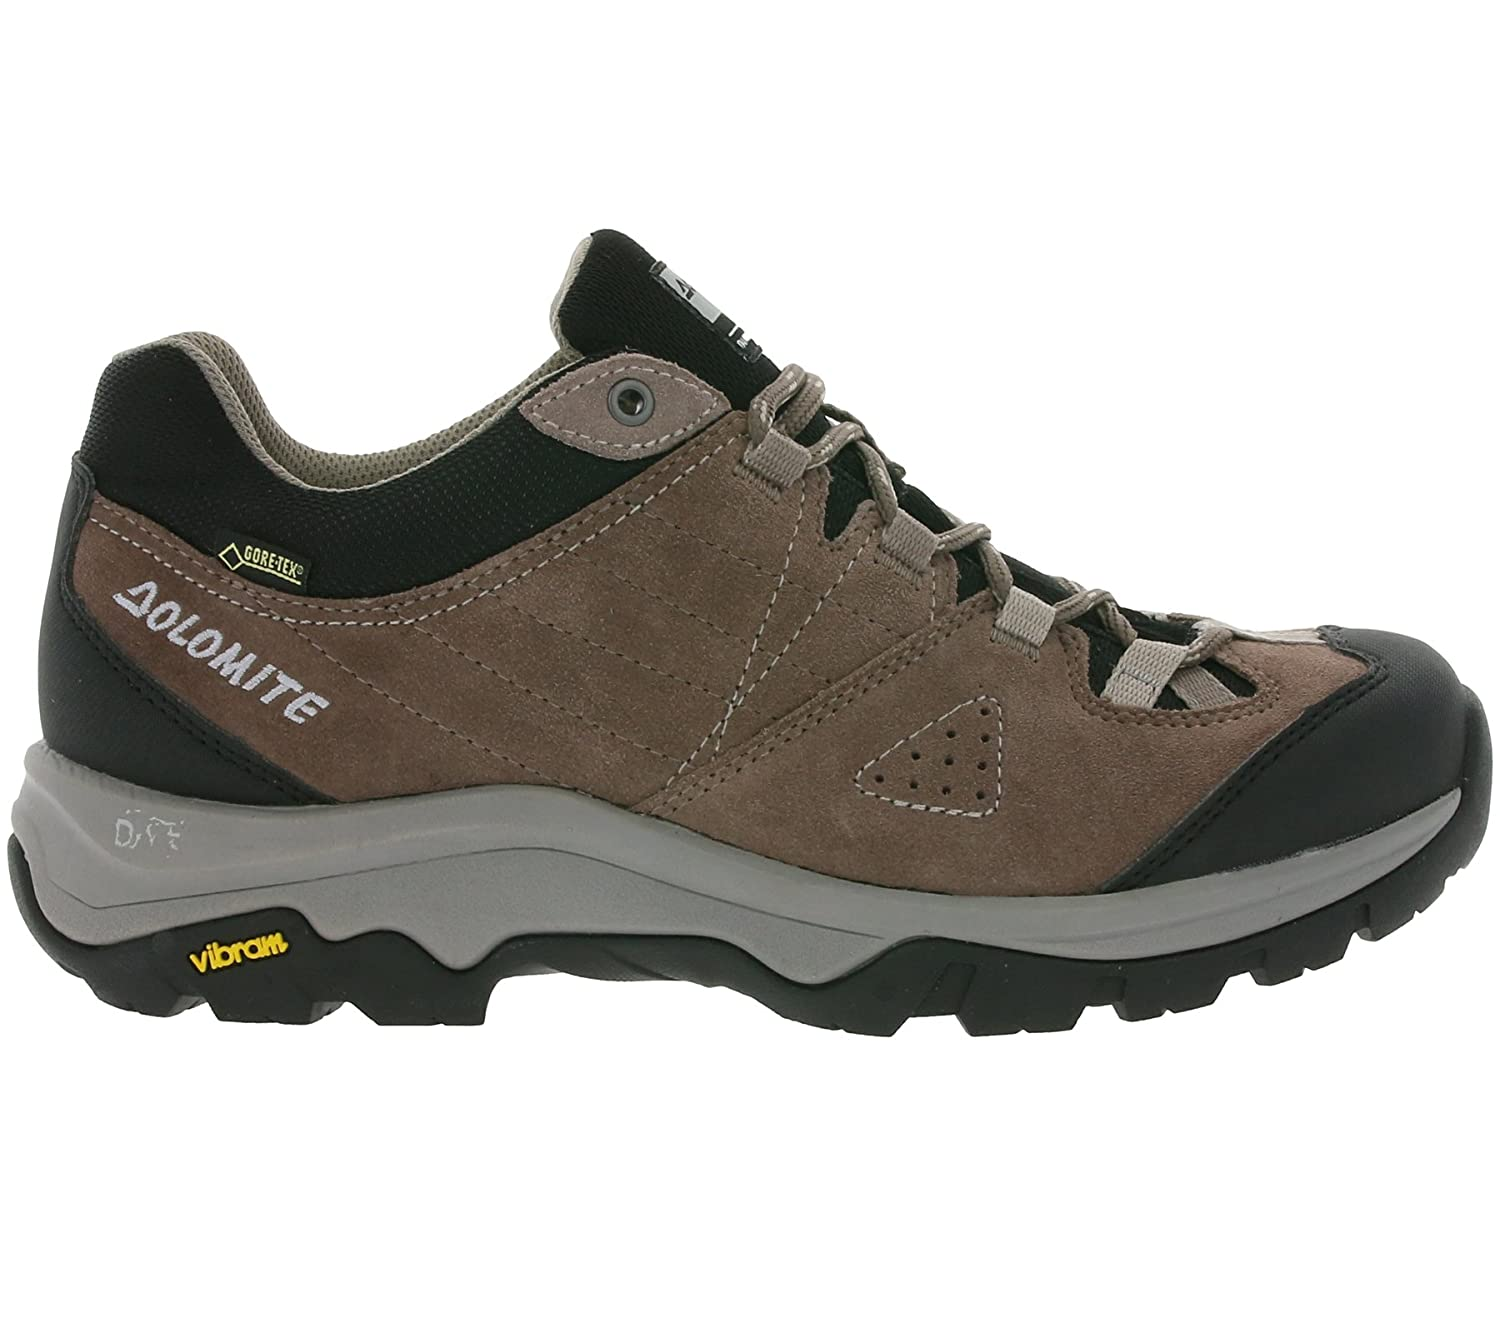 c29d17302719a Dolomite Kendal Low GORE-TEX Hiking Boot Brown 855722 00 103  Amazon.co.uk   Shoes   Bags